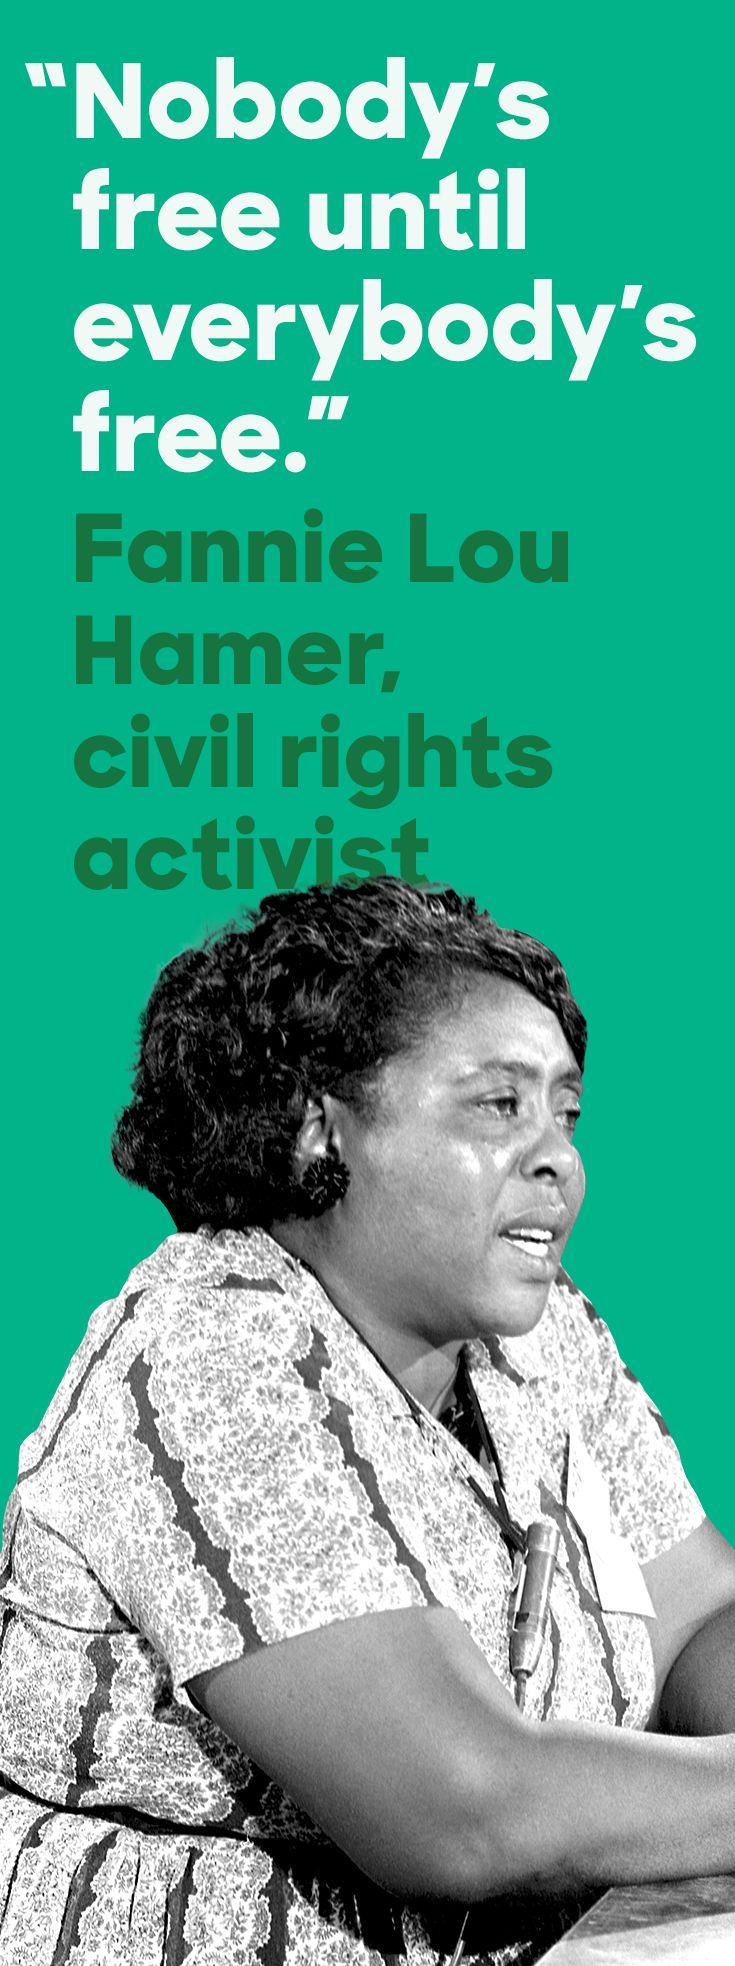 Civil rights activist Fannie Lou Hamer dedicated her life to securing universal…